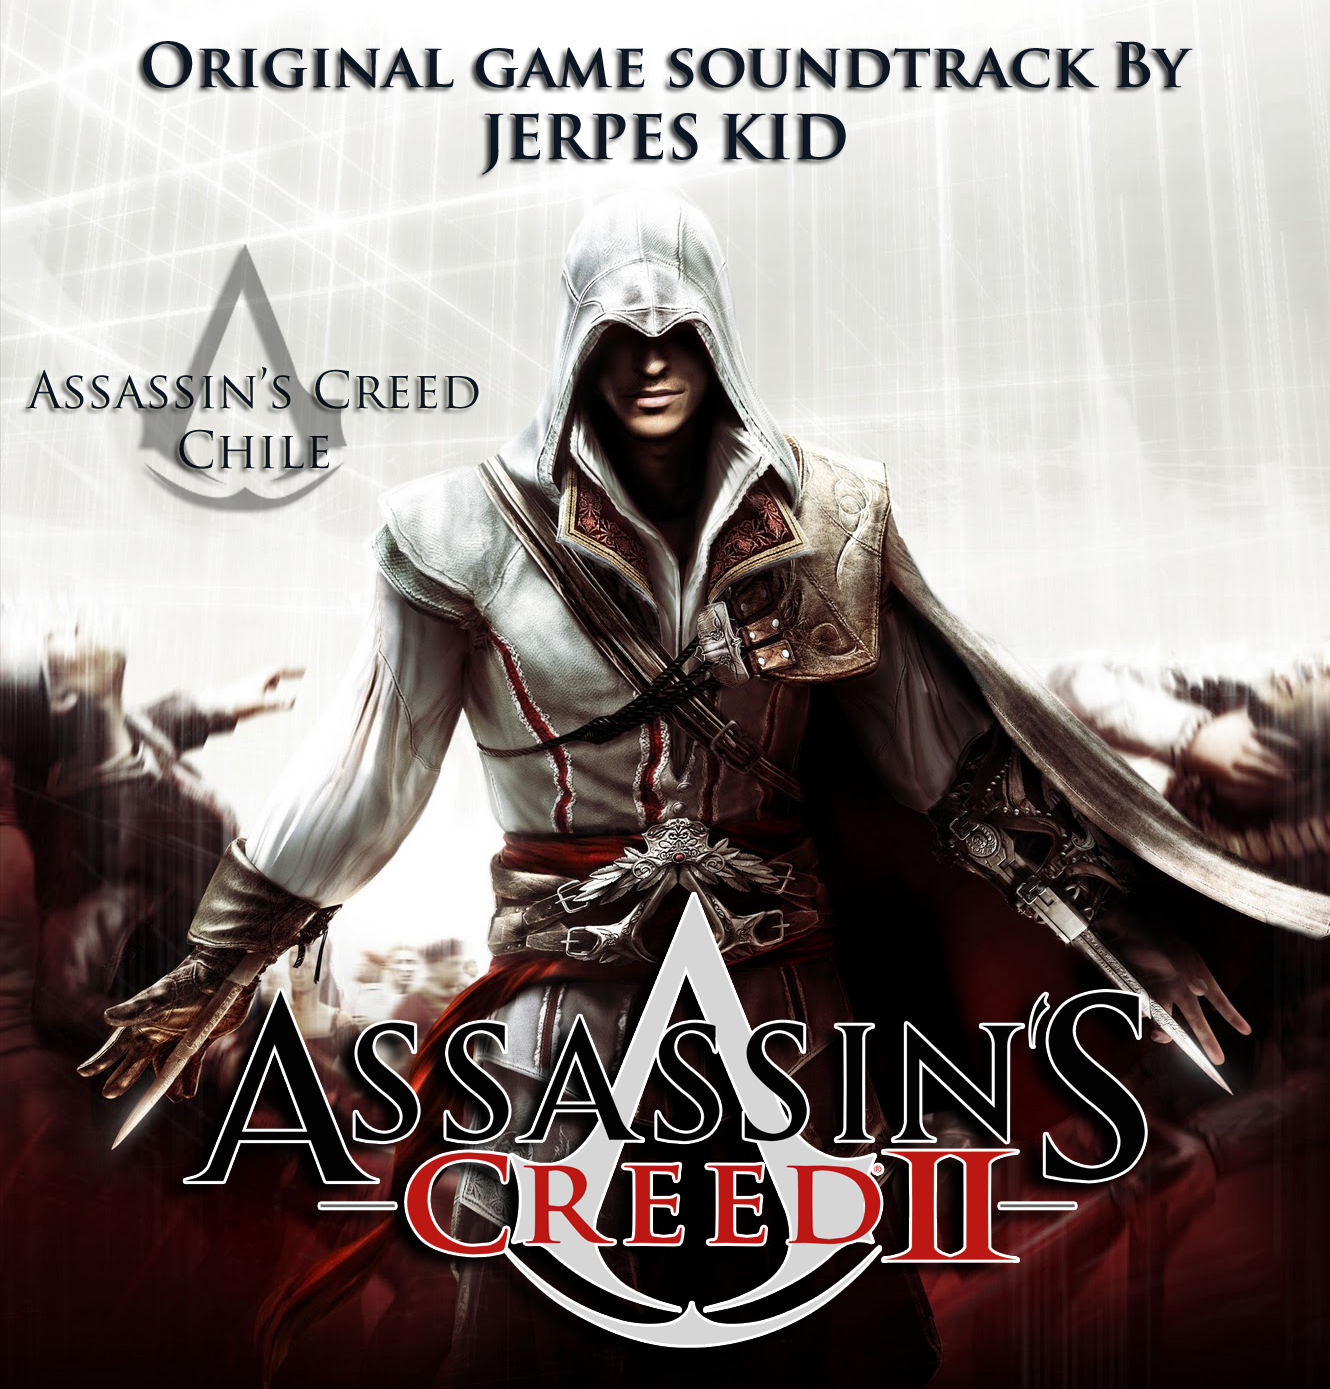 designe assassins creed2 ost - HD 1330×1389